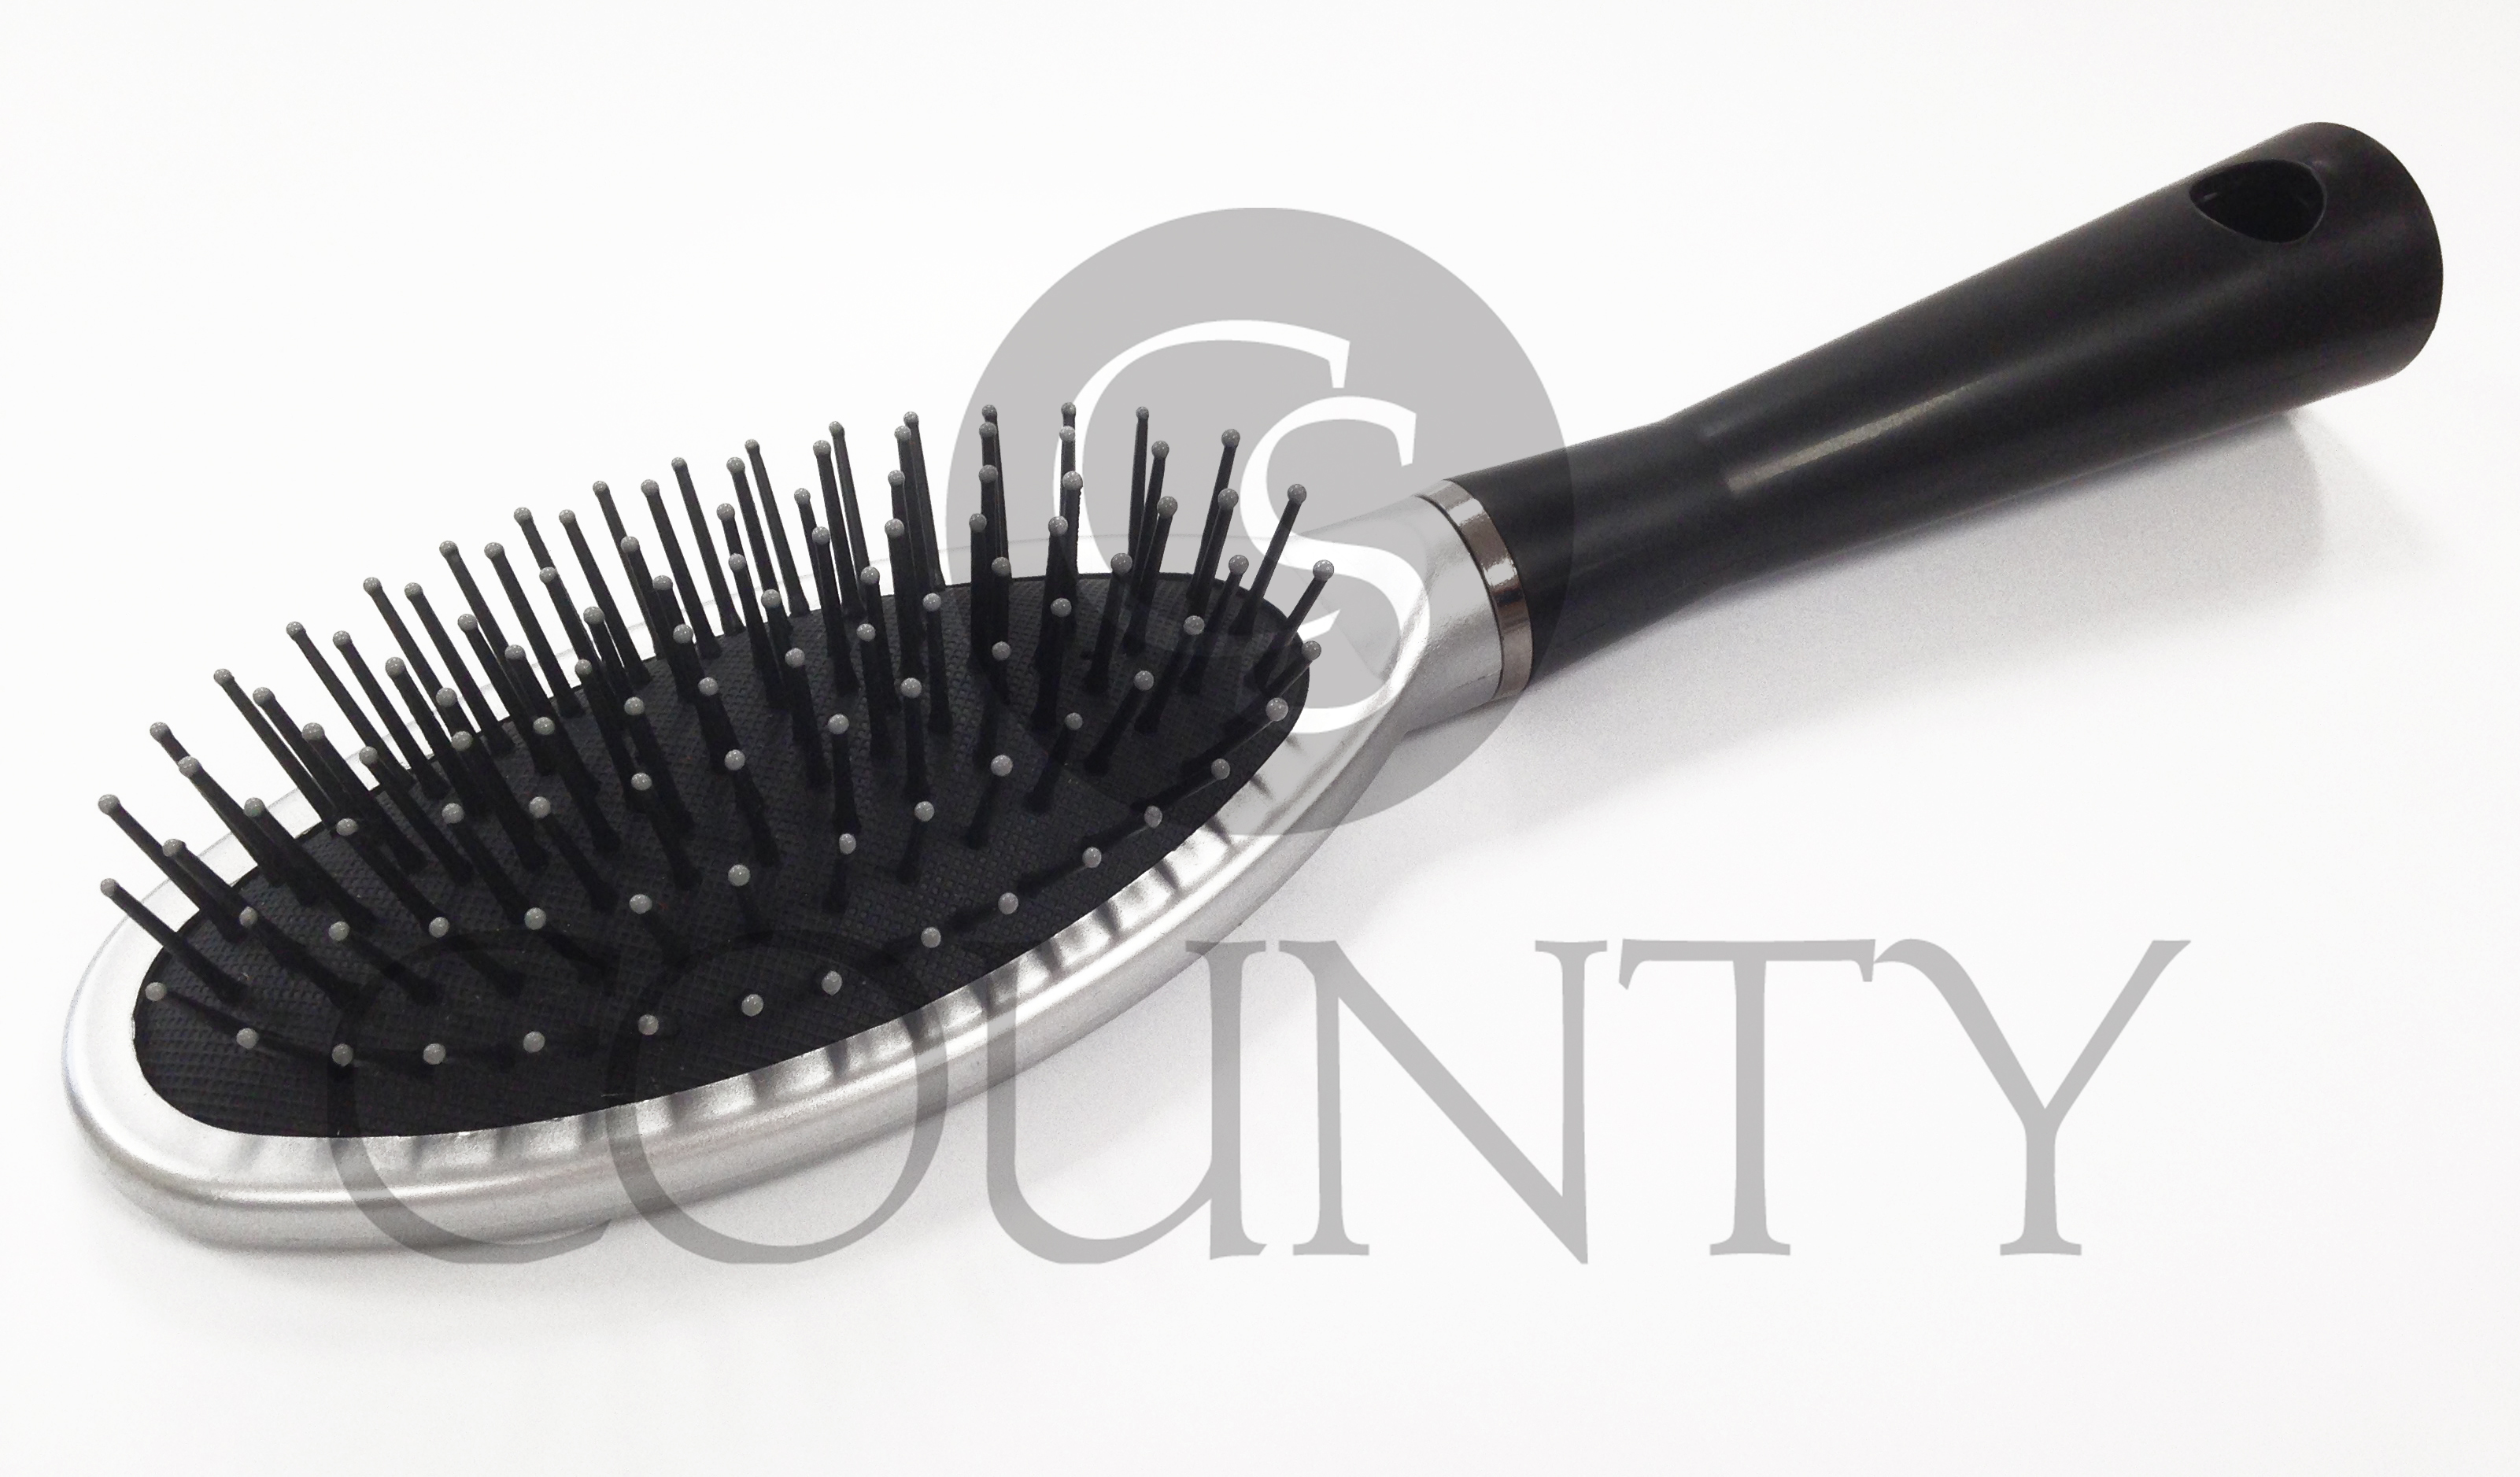 CS BEAUTY S8071 Cushion Brush